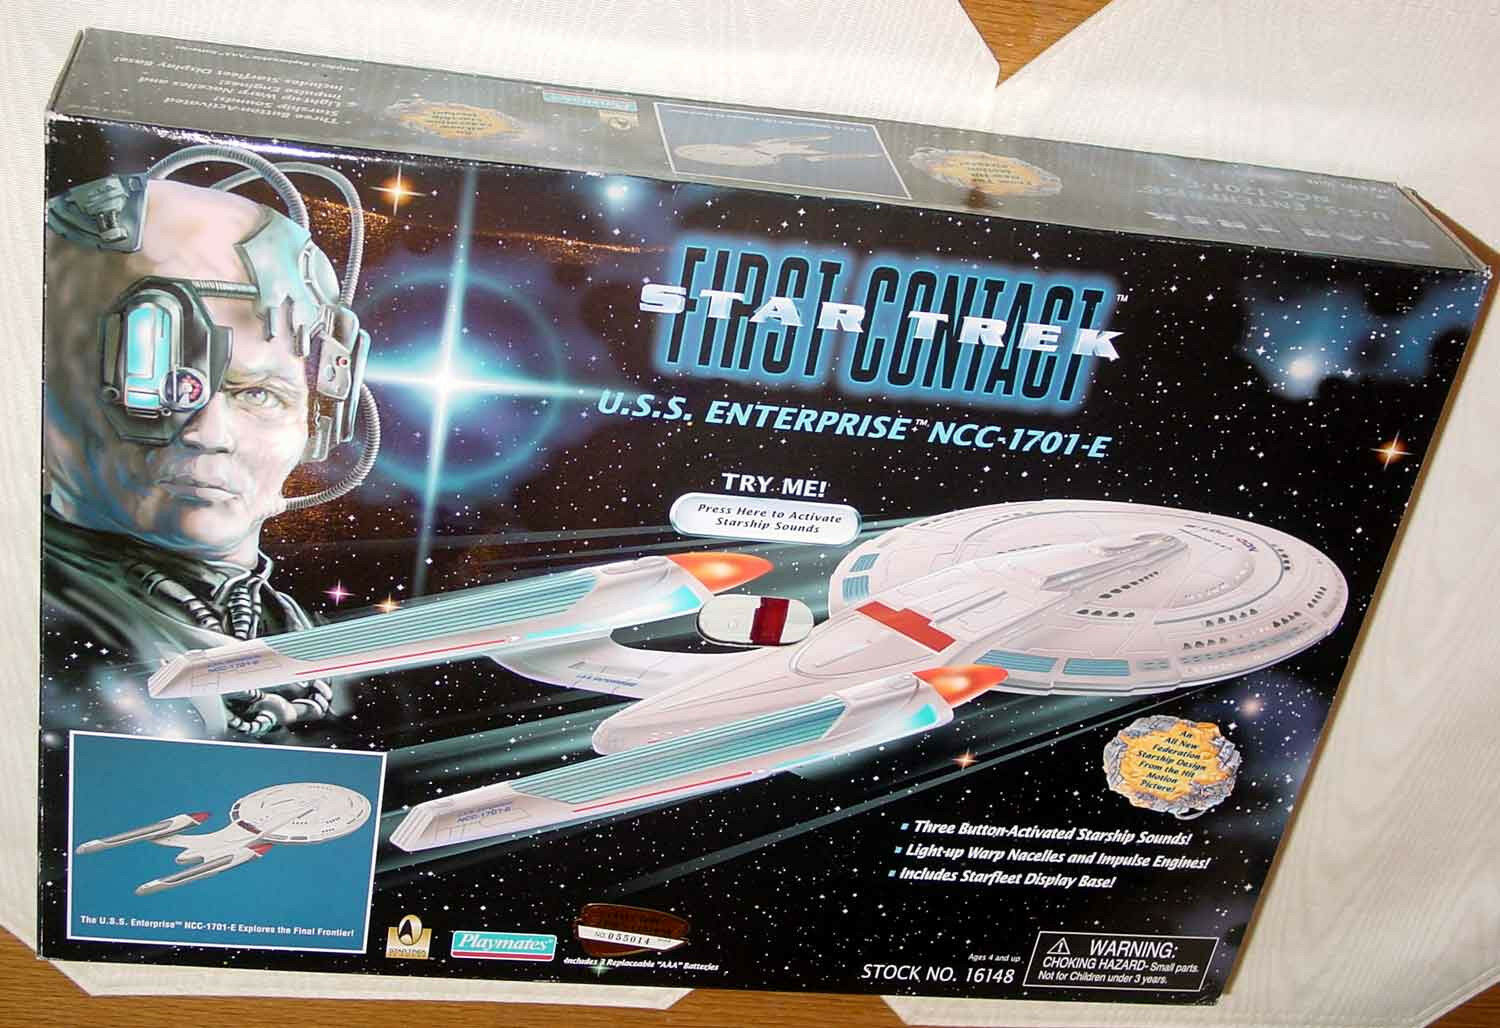 STAR TREK FIRST CONTACT ELECTRONIC ENTERPRISE E